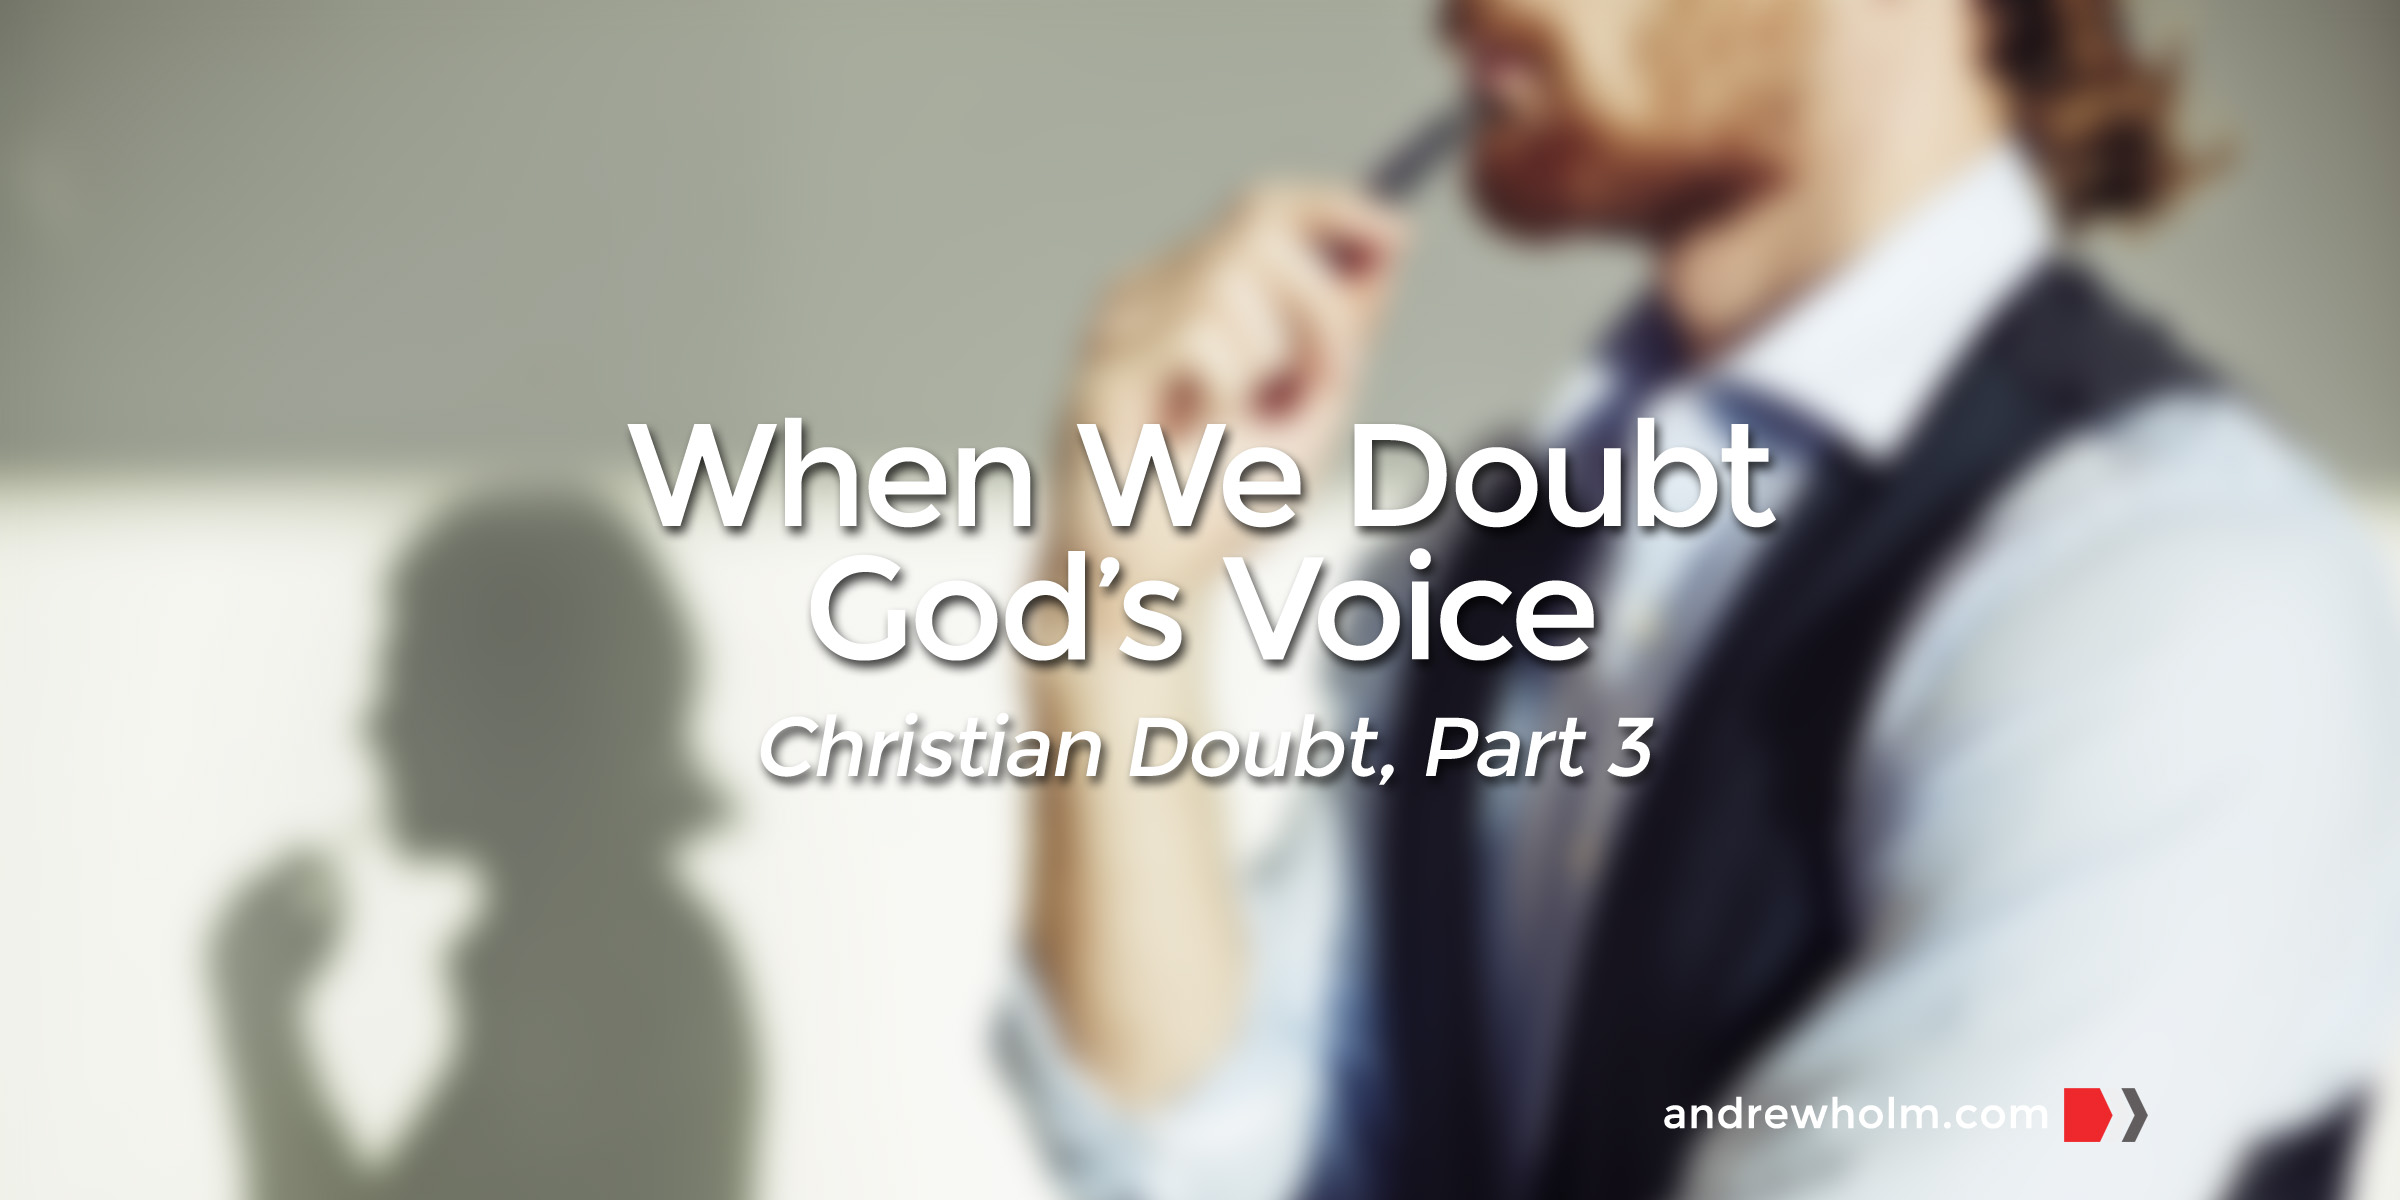 Christian Doubt, Part 3